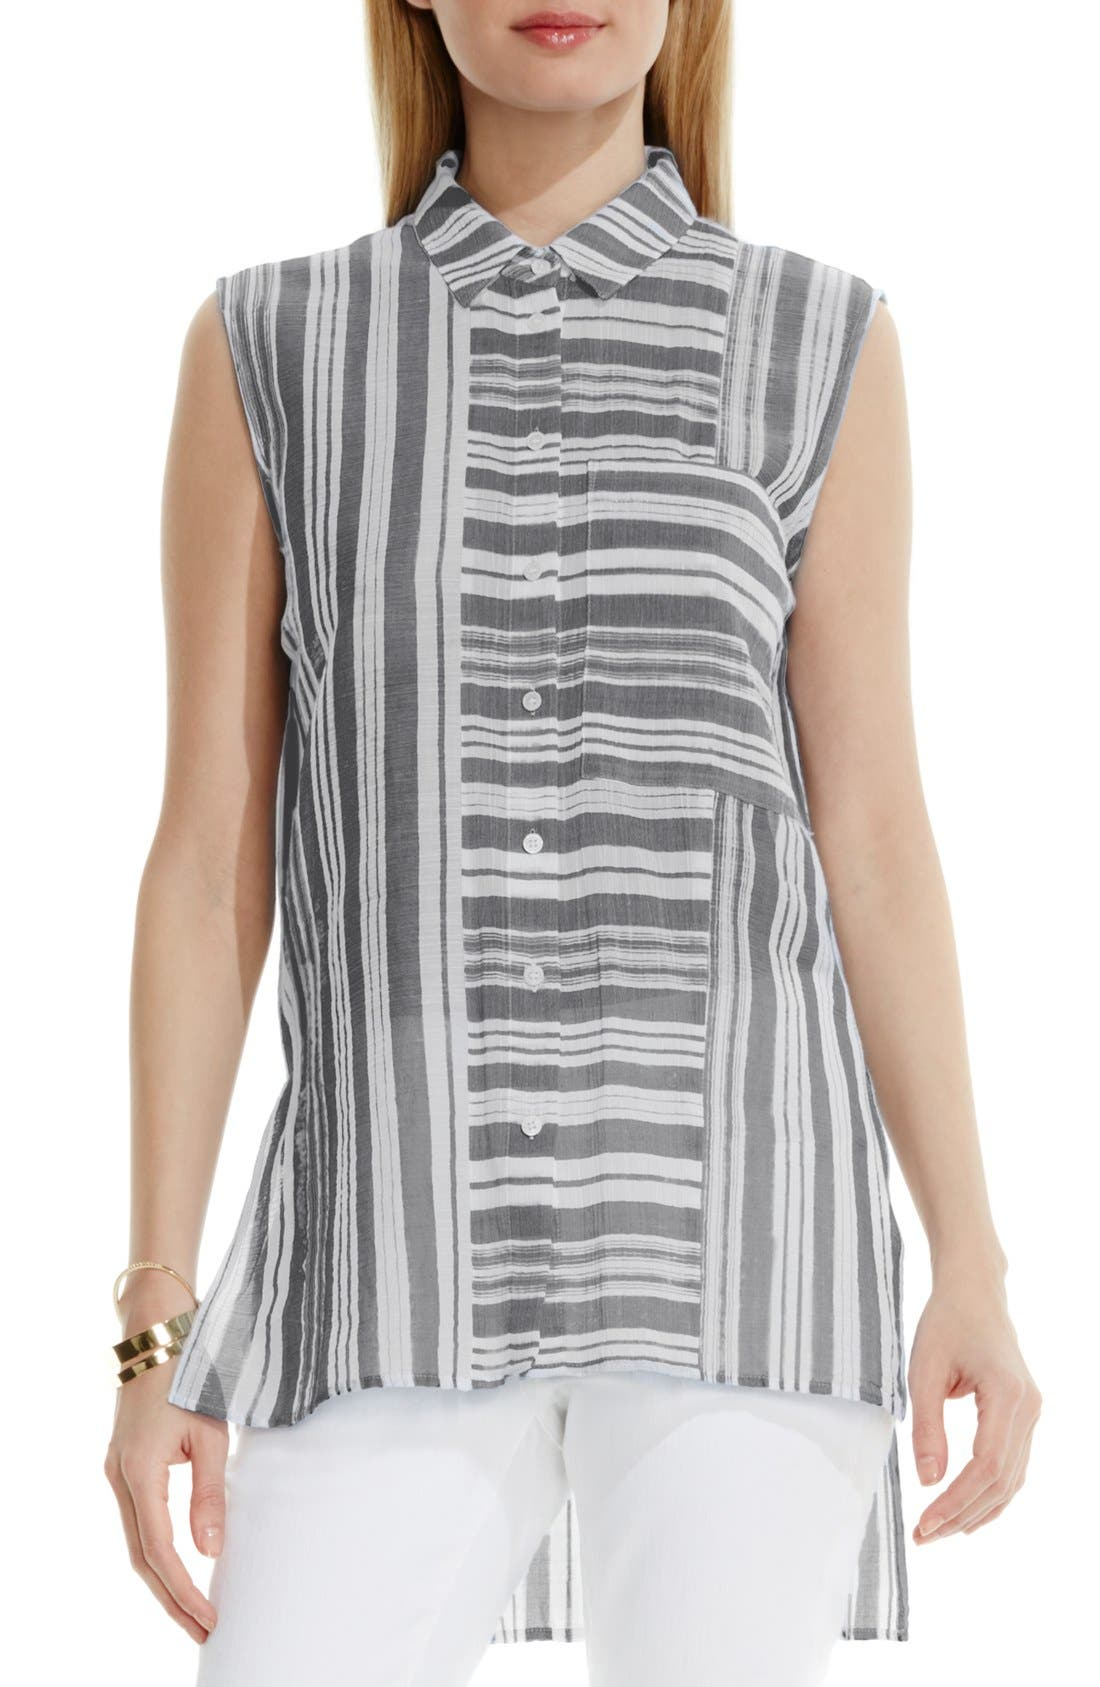 Alternate Image 1 Selected - Two by Vince Camuto Sheer Stripe Sleeveless Blouse